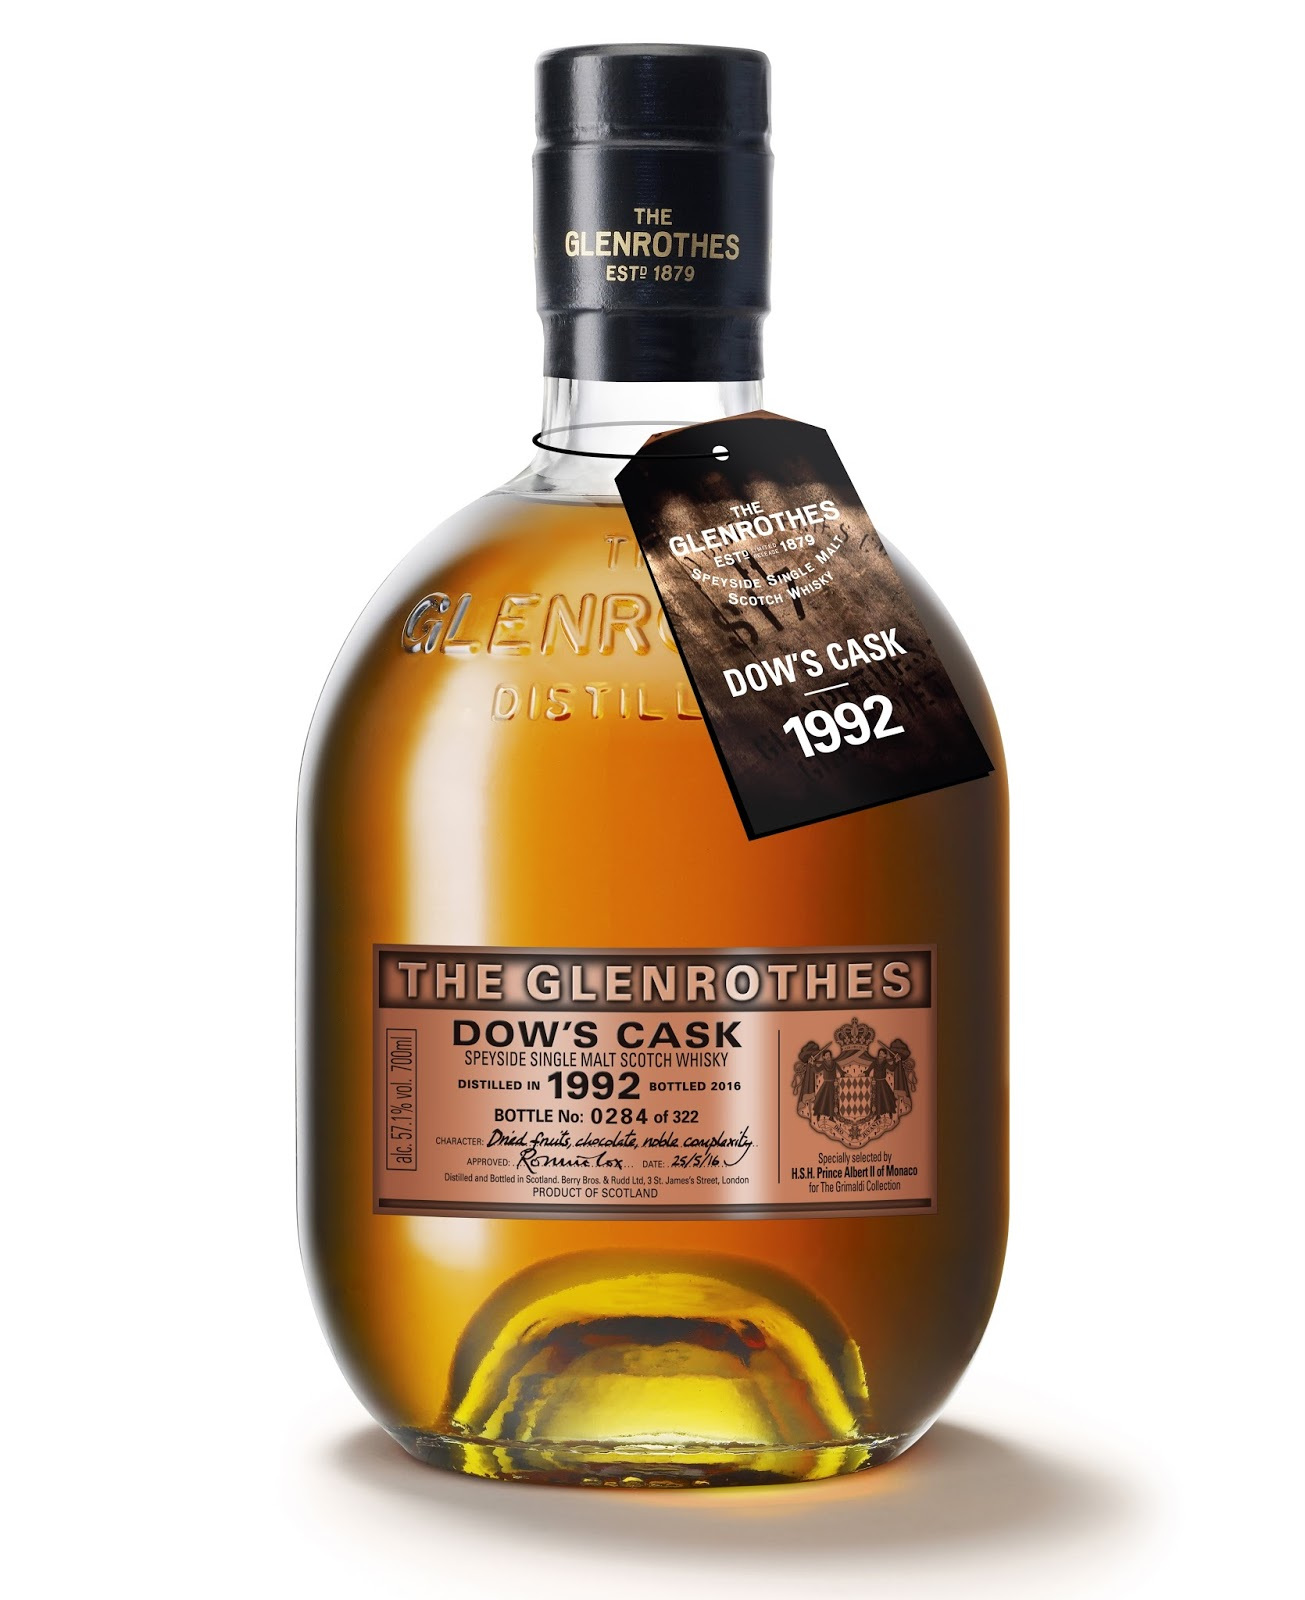 The Glenrothes 1992 Dow's Port Cask